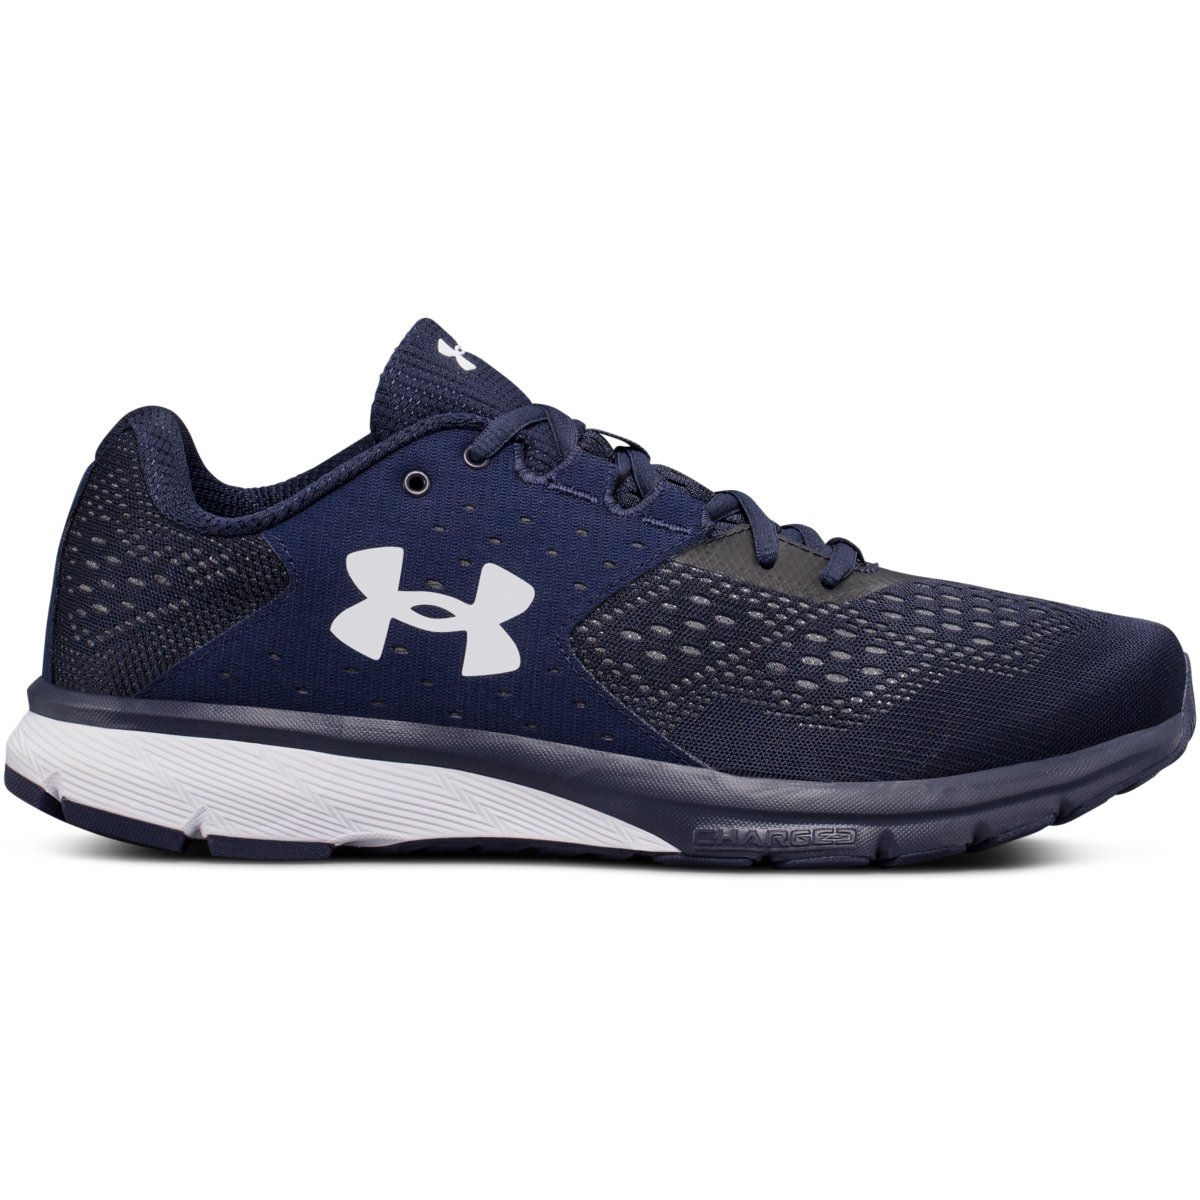 Under Armour Charged Rebel Running Shoes Aw